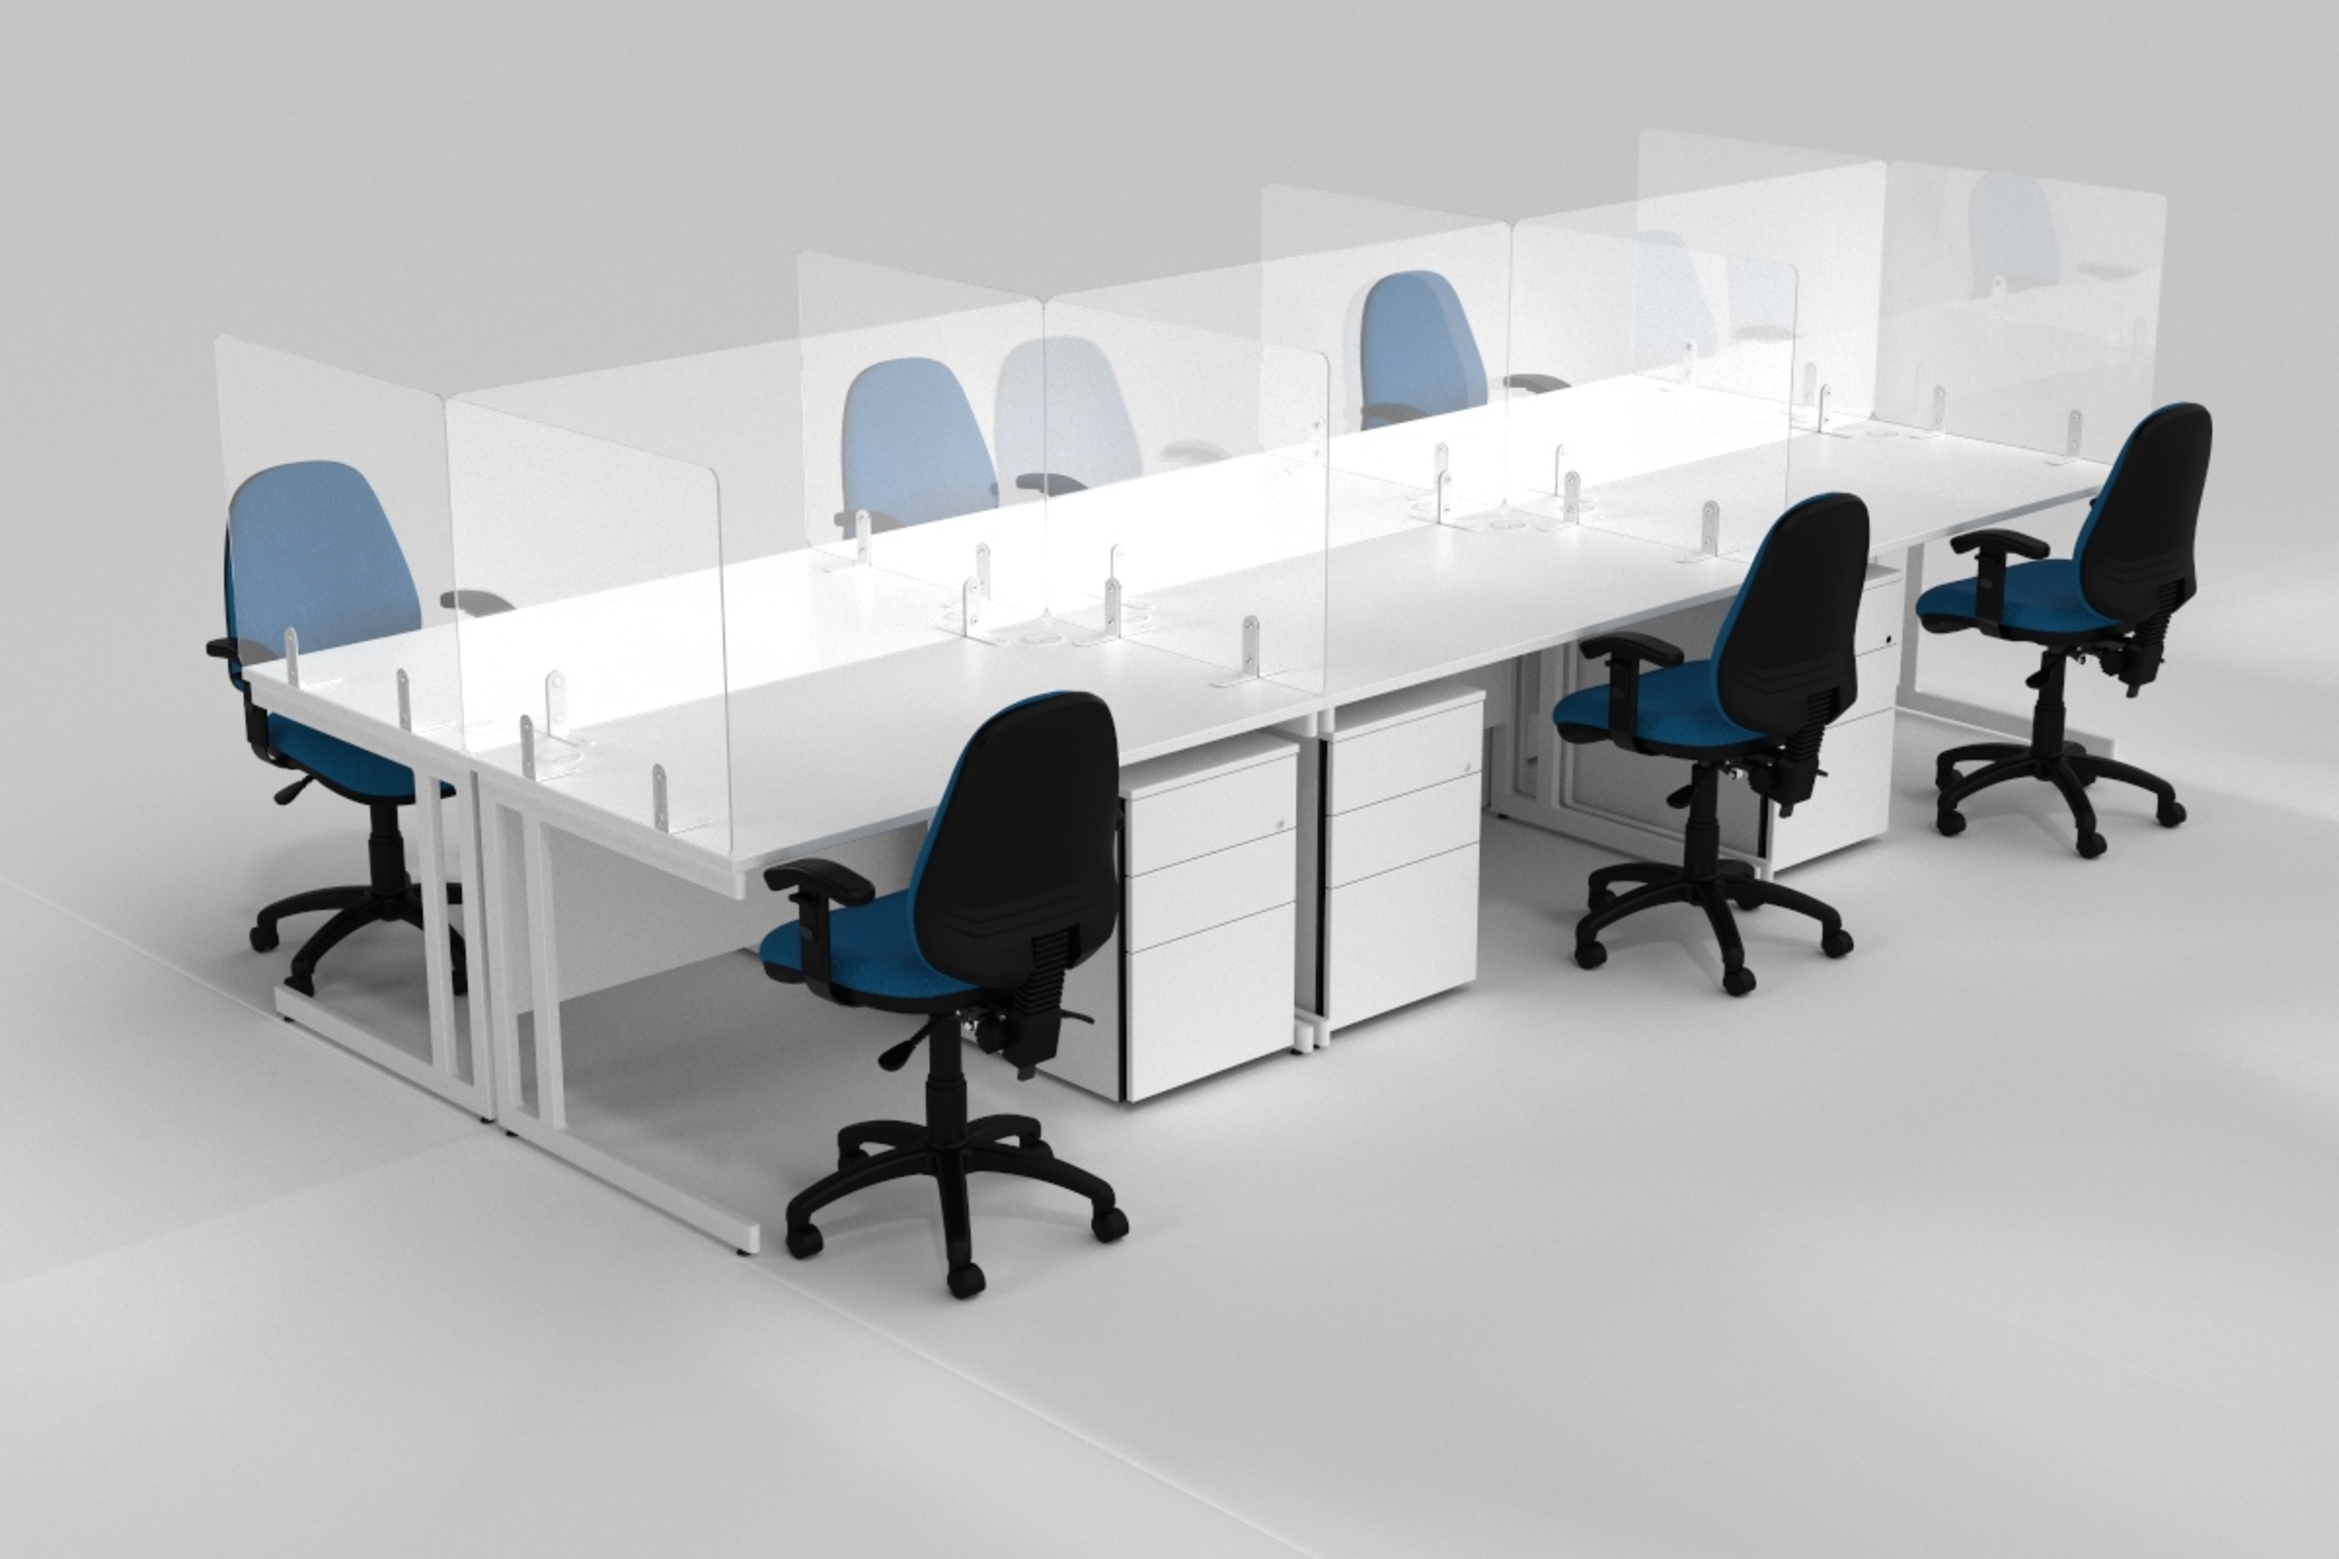 Freestanding Screens for Desks